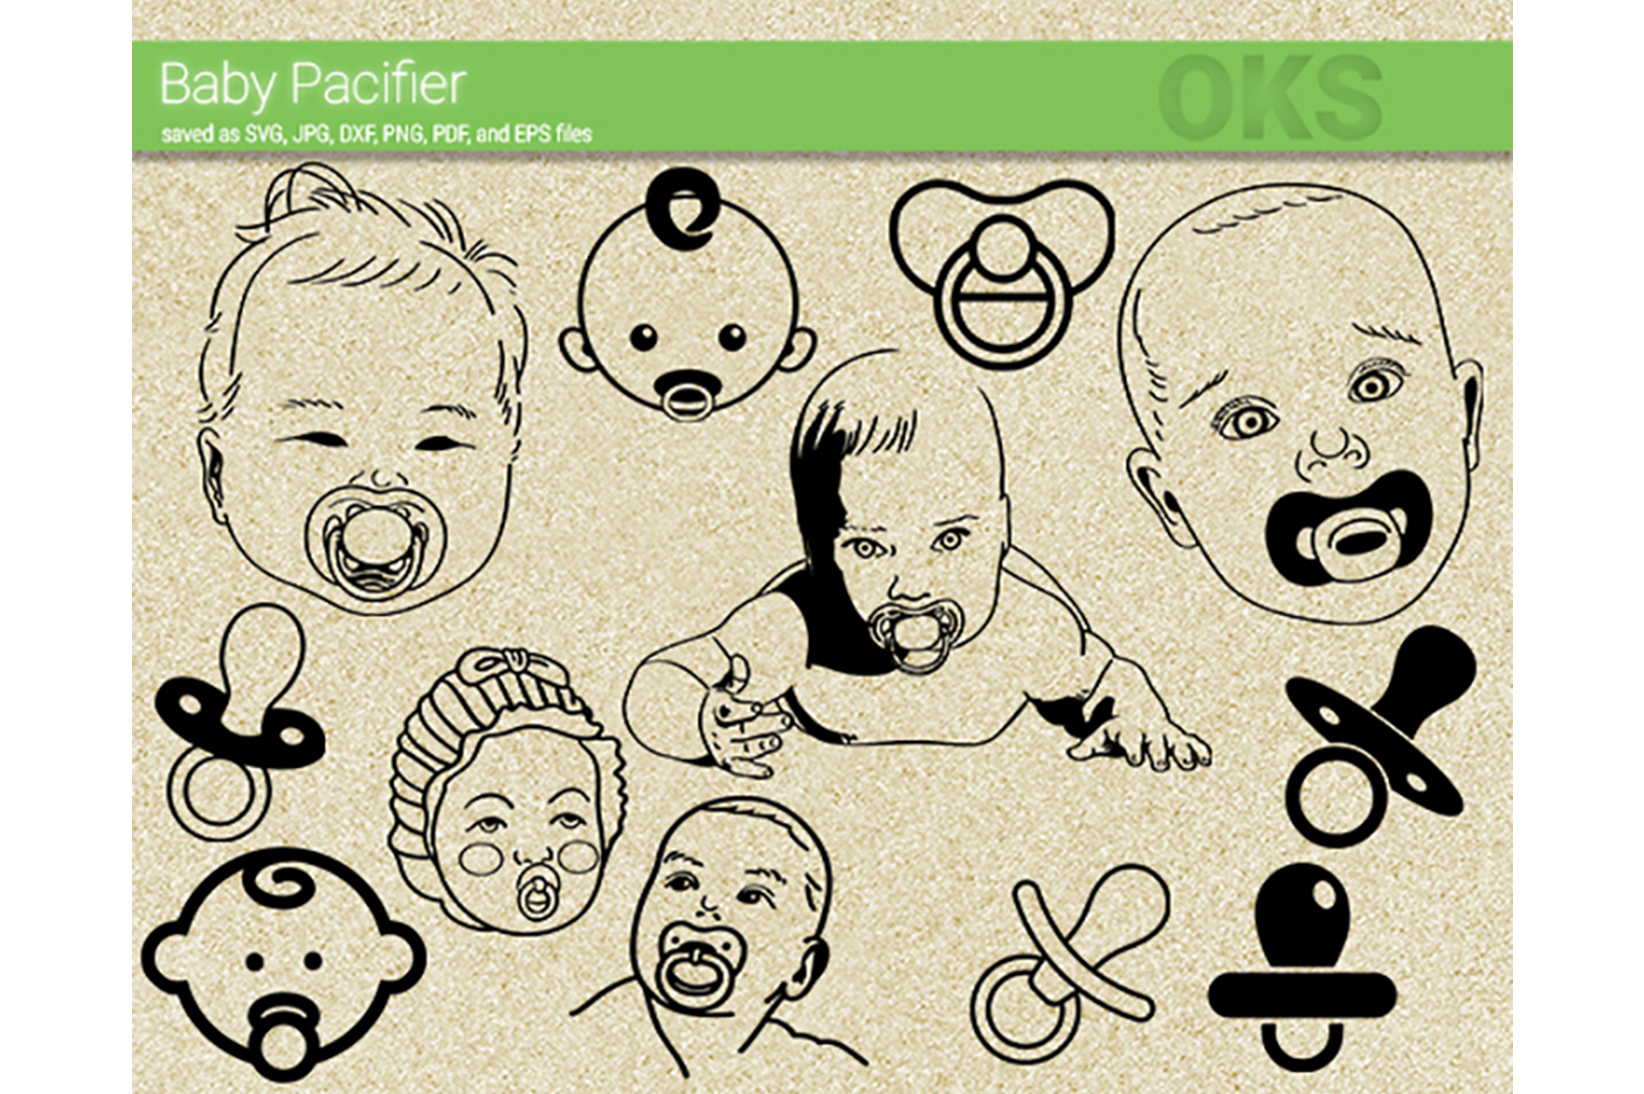 Baby Pacifier Svg Vector Graphic By Crafteroks Creative Fabrica